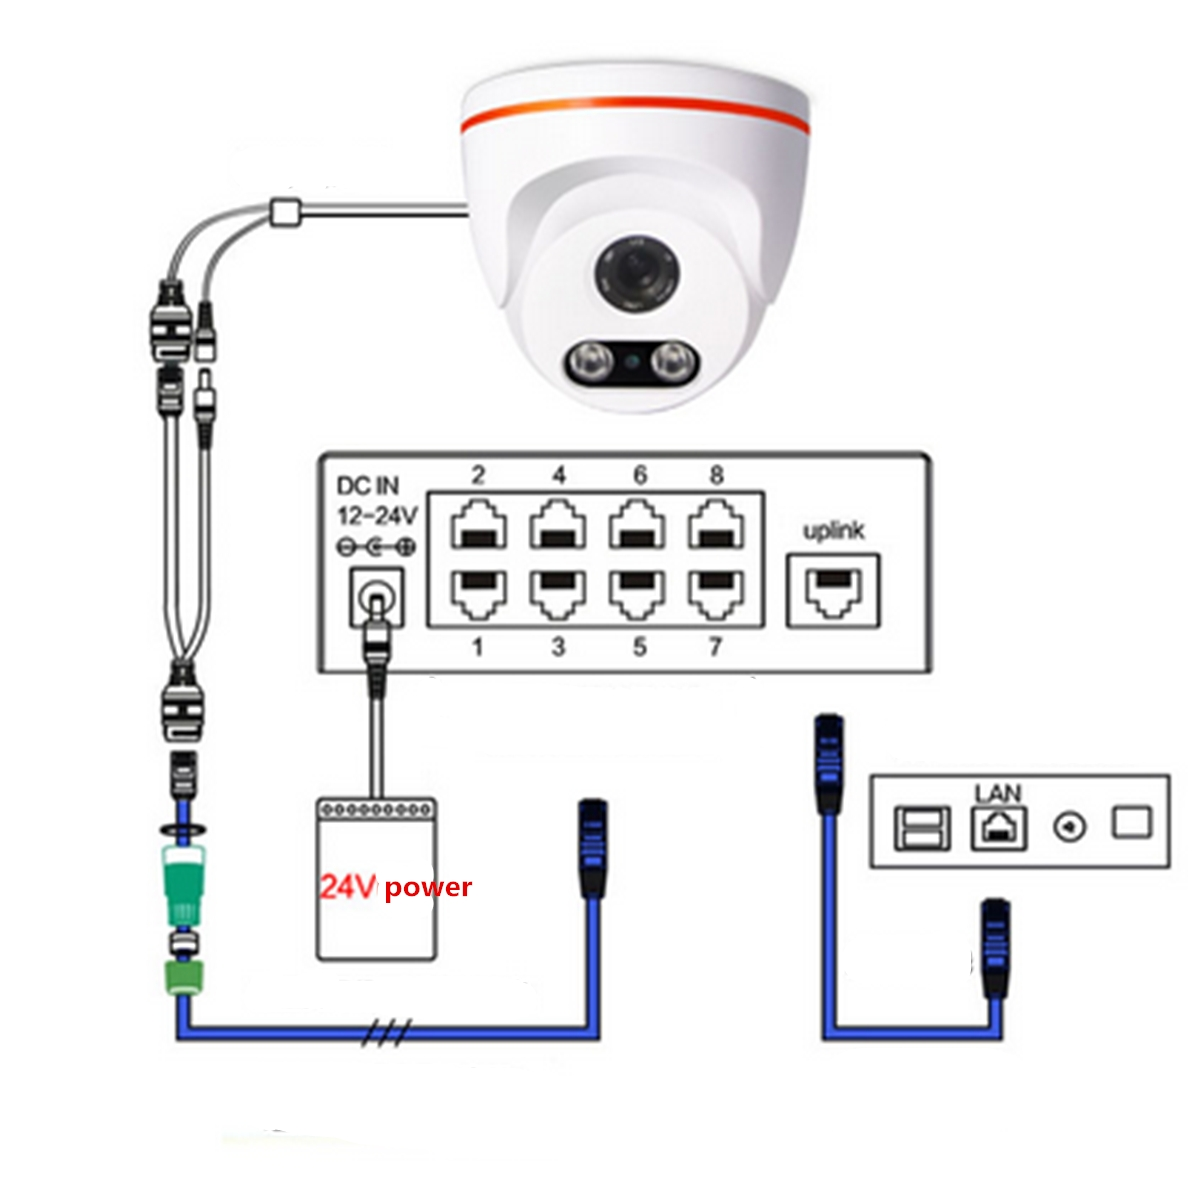 HDMI 20to 20DVI D together with Rockwood Rv Wiring Diagram further Rs 485 Connections Faq also Usb Cable Wire Diagram besides Power Over Ether  Poe Splitter 10100mbps 12v 2a Poe Adapter Forip Cameras 3387518. on usb to ethernet wiring diagram